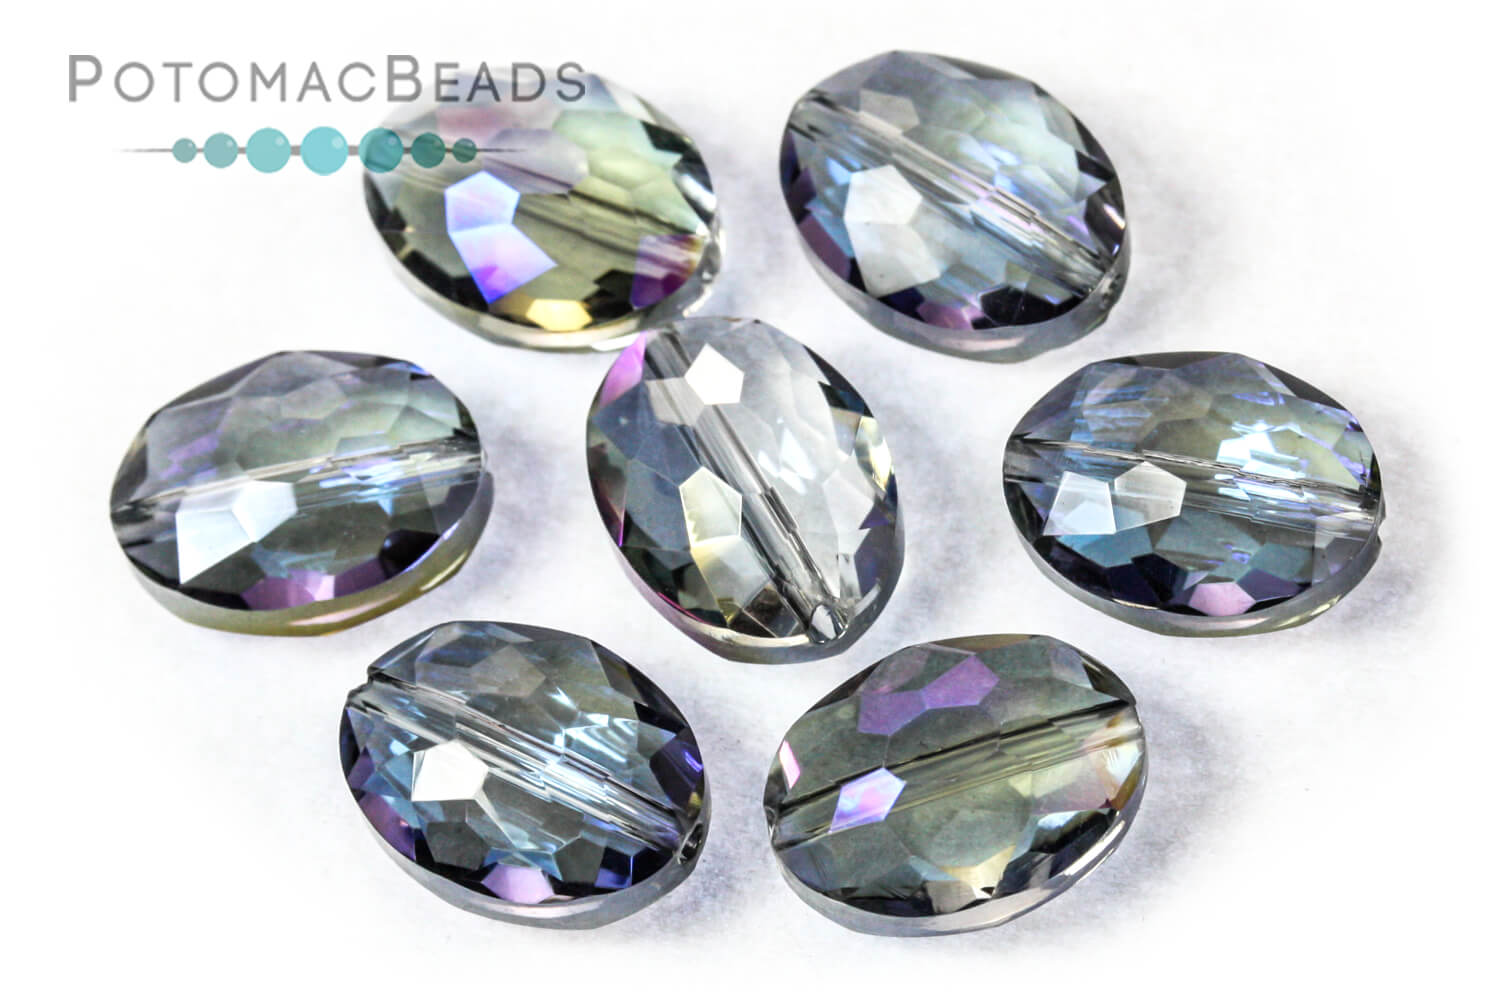 Jewelry Making Supplies & Beads / Beads and Crystals / Potomac Crystal Oval Nugget Beads